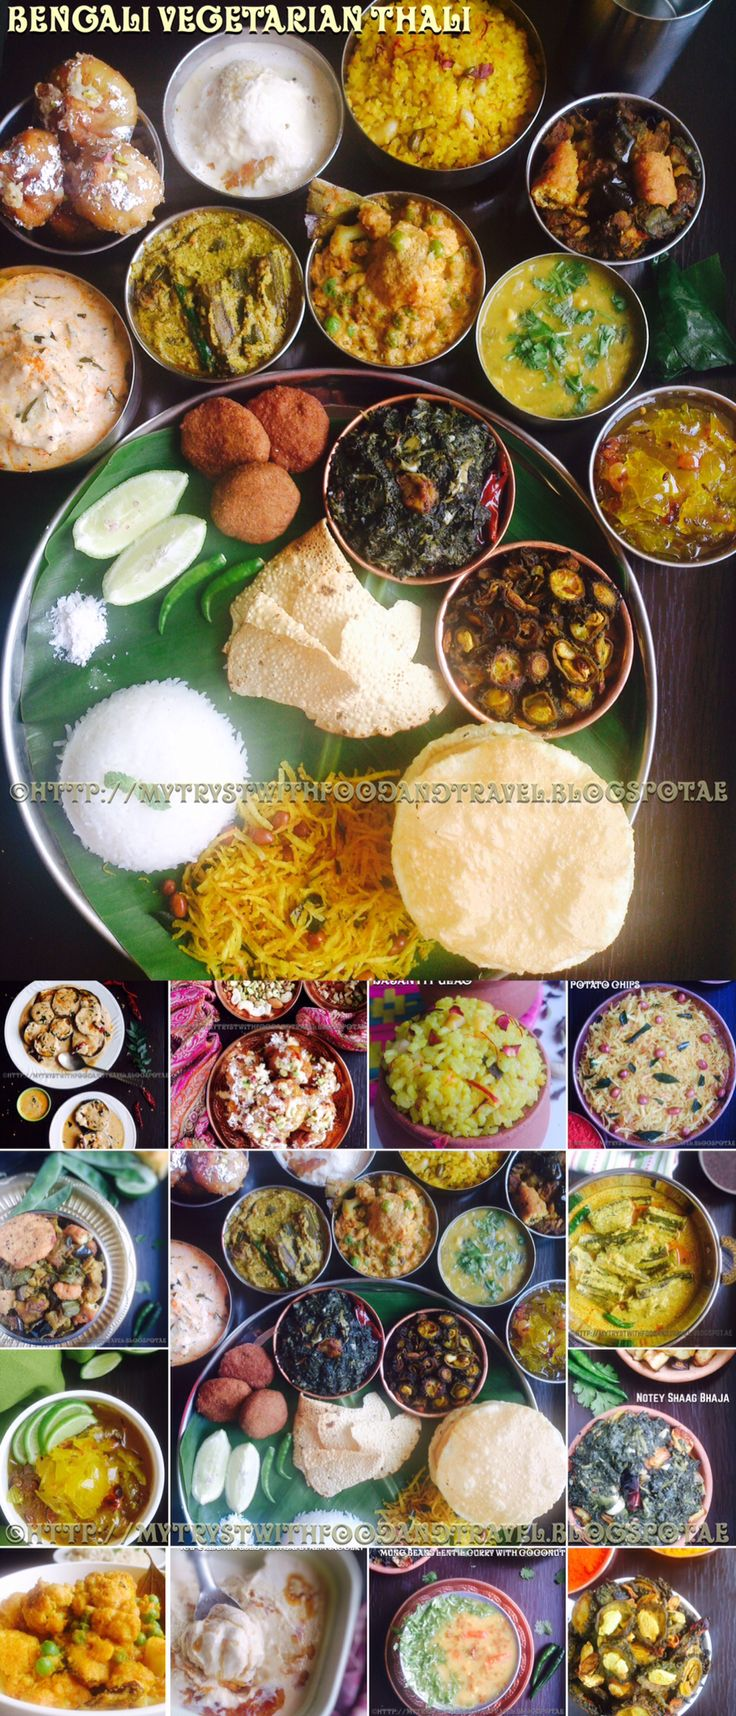 540 best indian thali images on pinterest cooking food gujarati bengali vegetarian thali a splash of unassuming nuances and striking flavours forumfinder Choice Image